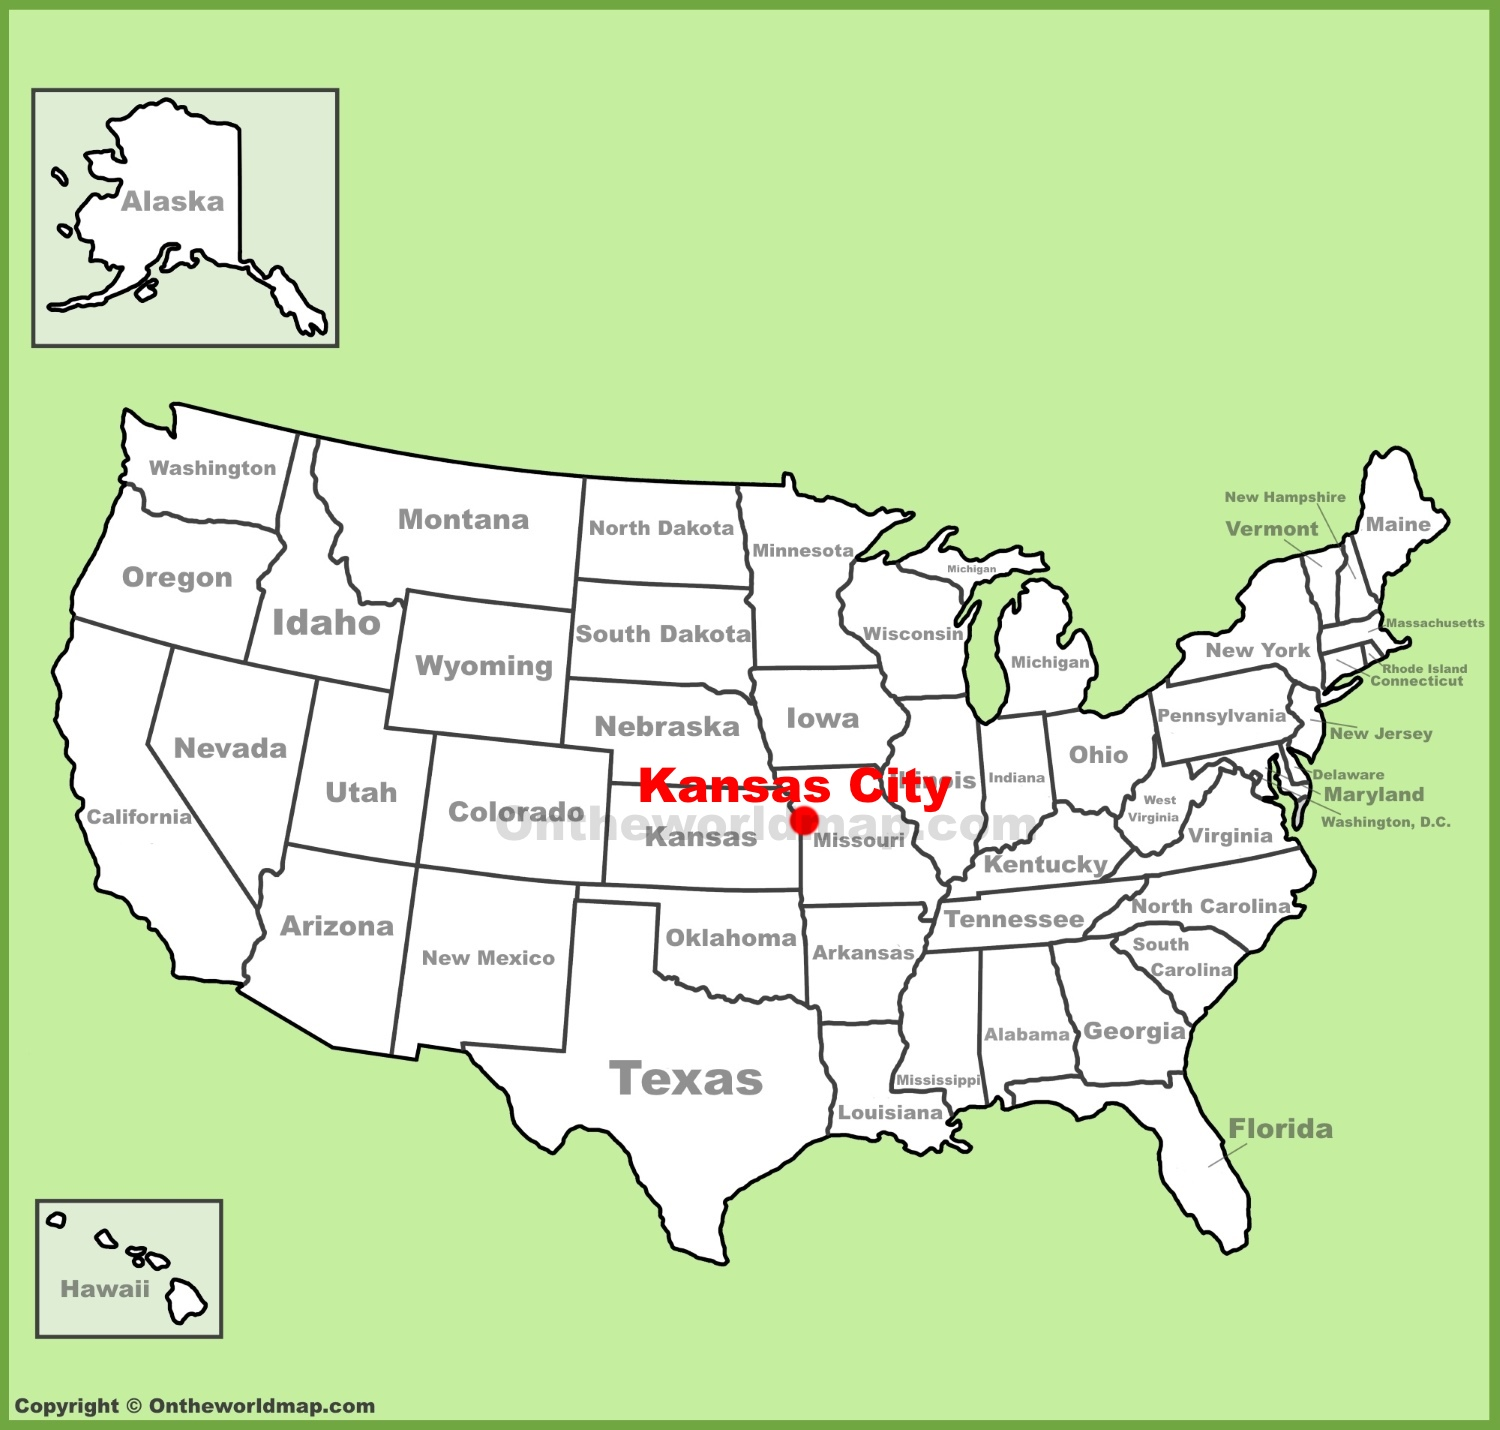 Kansas City Location On The US Map - Kansas city map